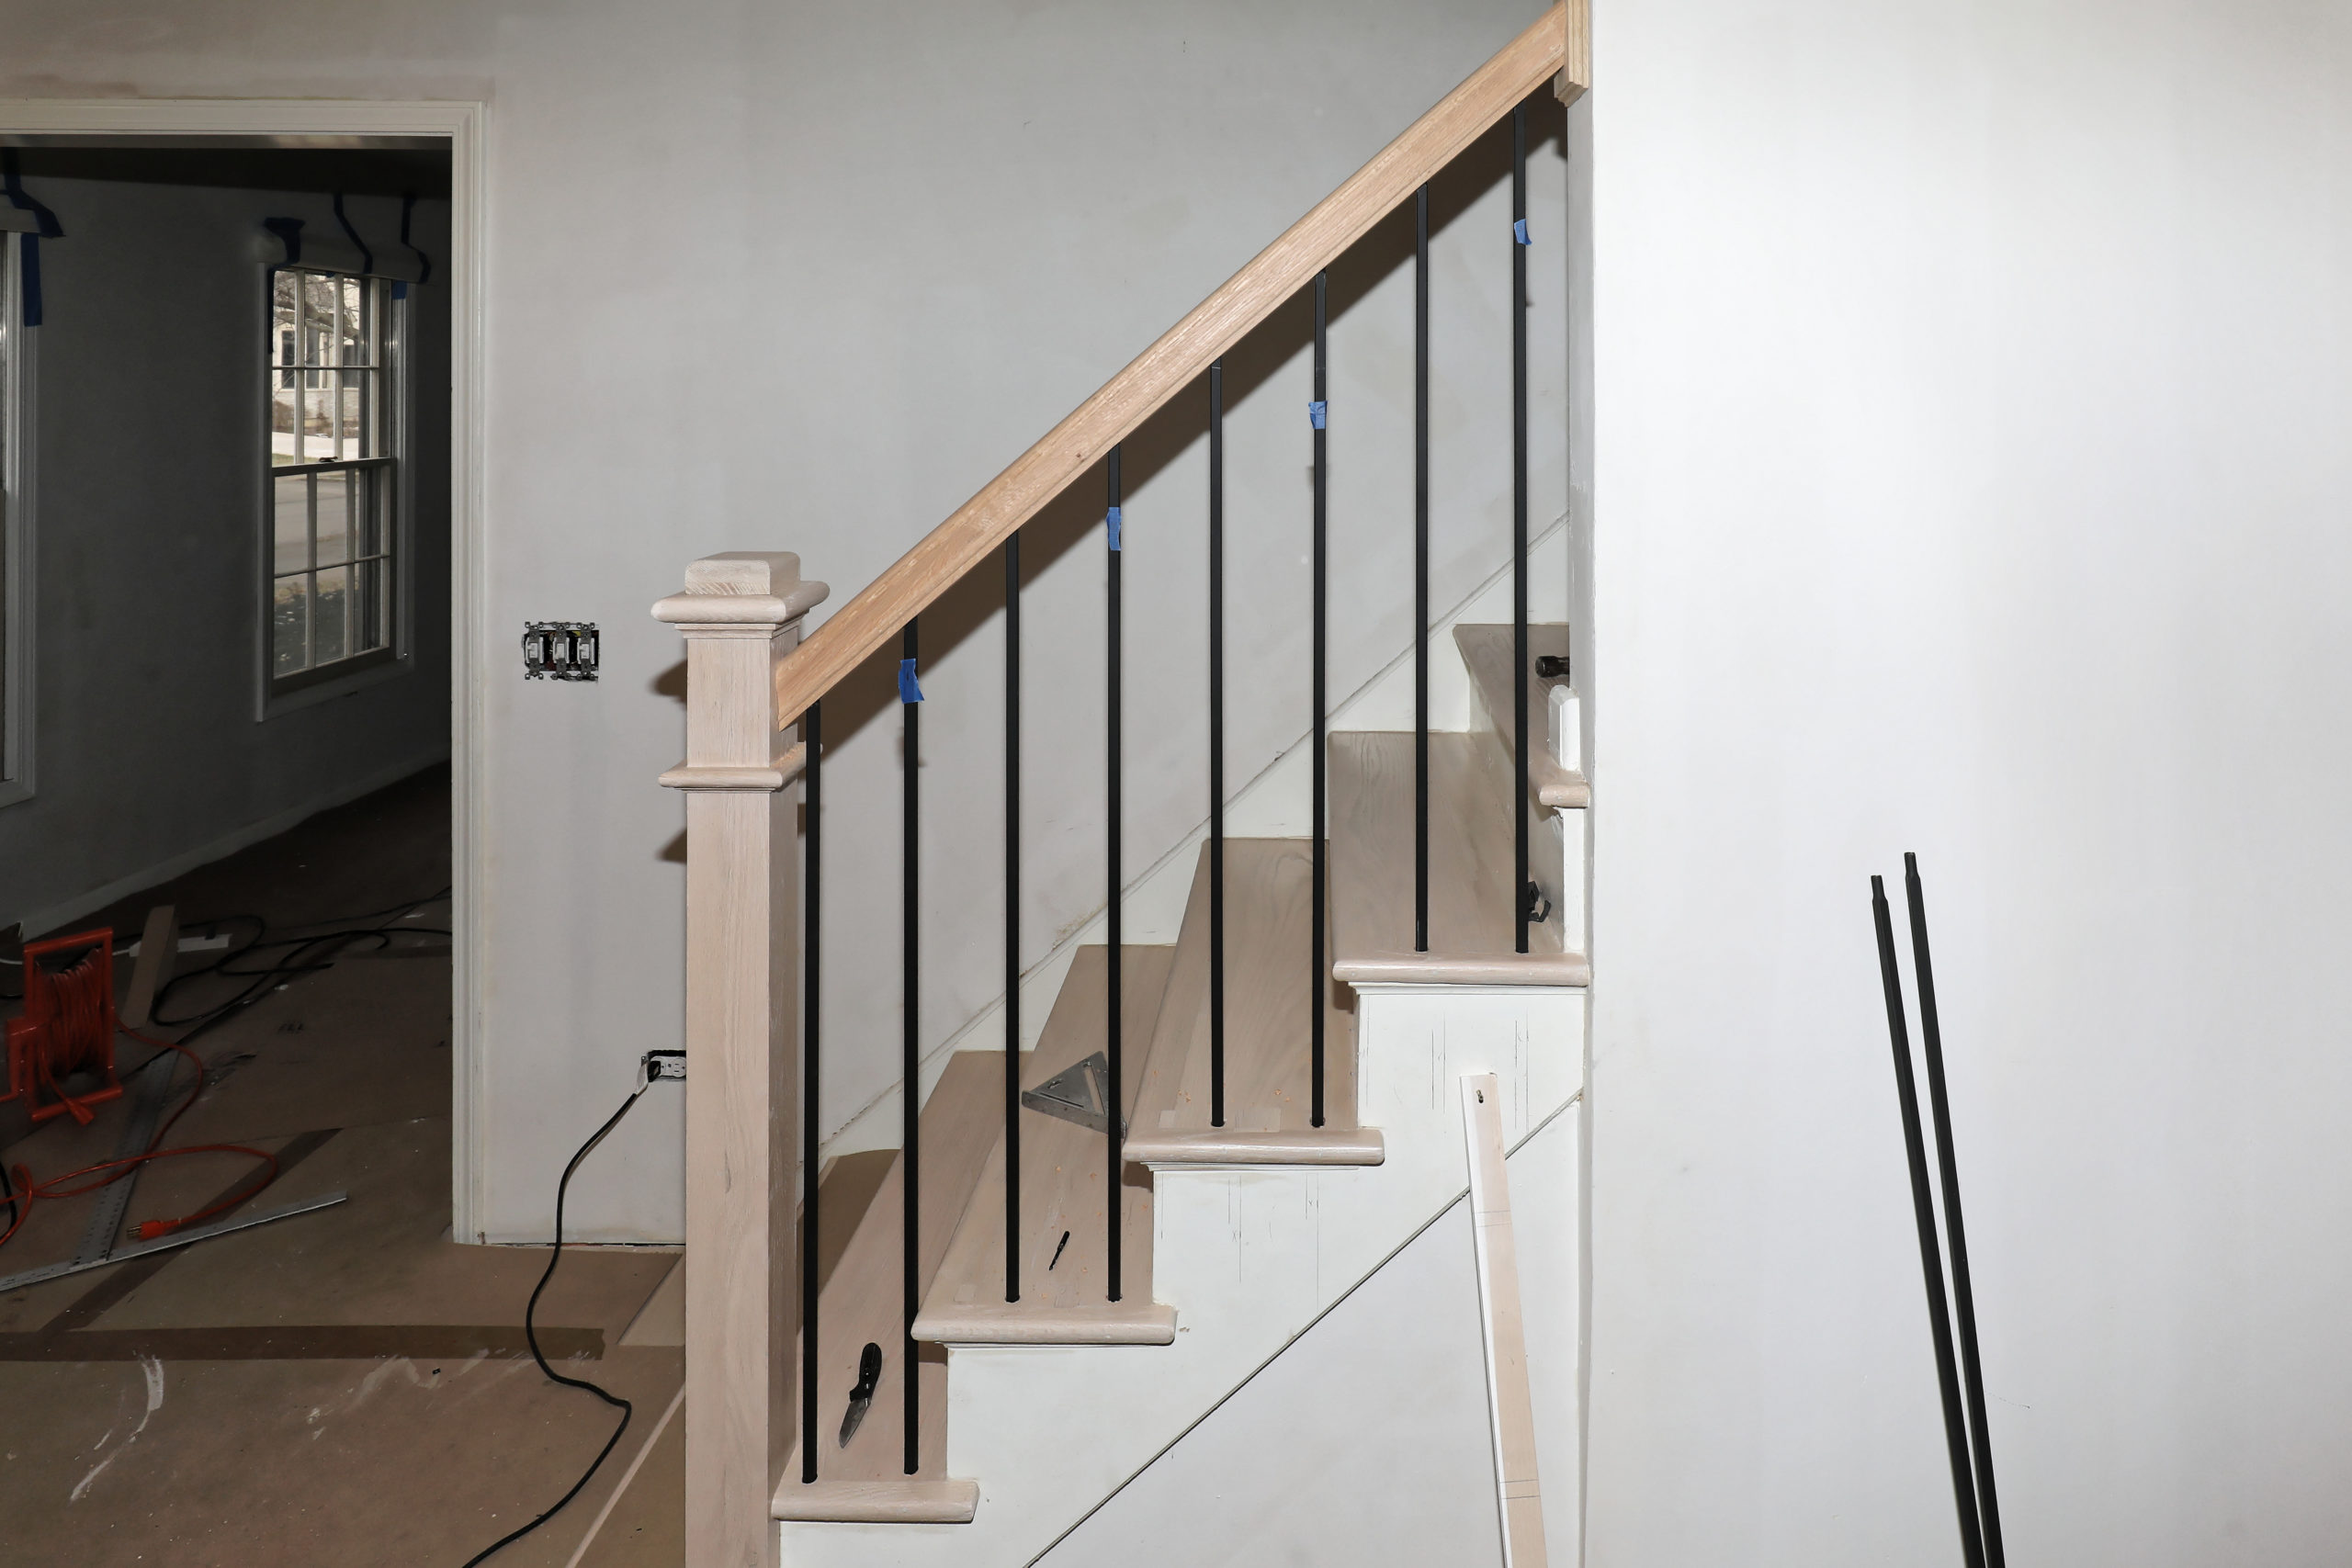 Cosmetic repair of an old staircase.